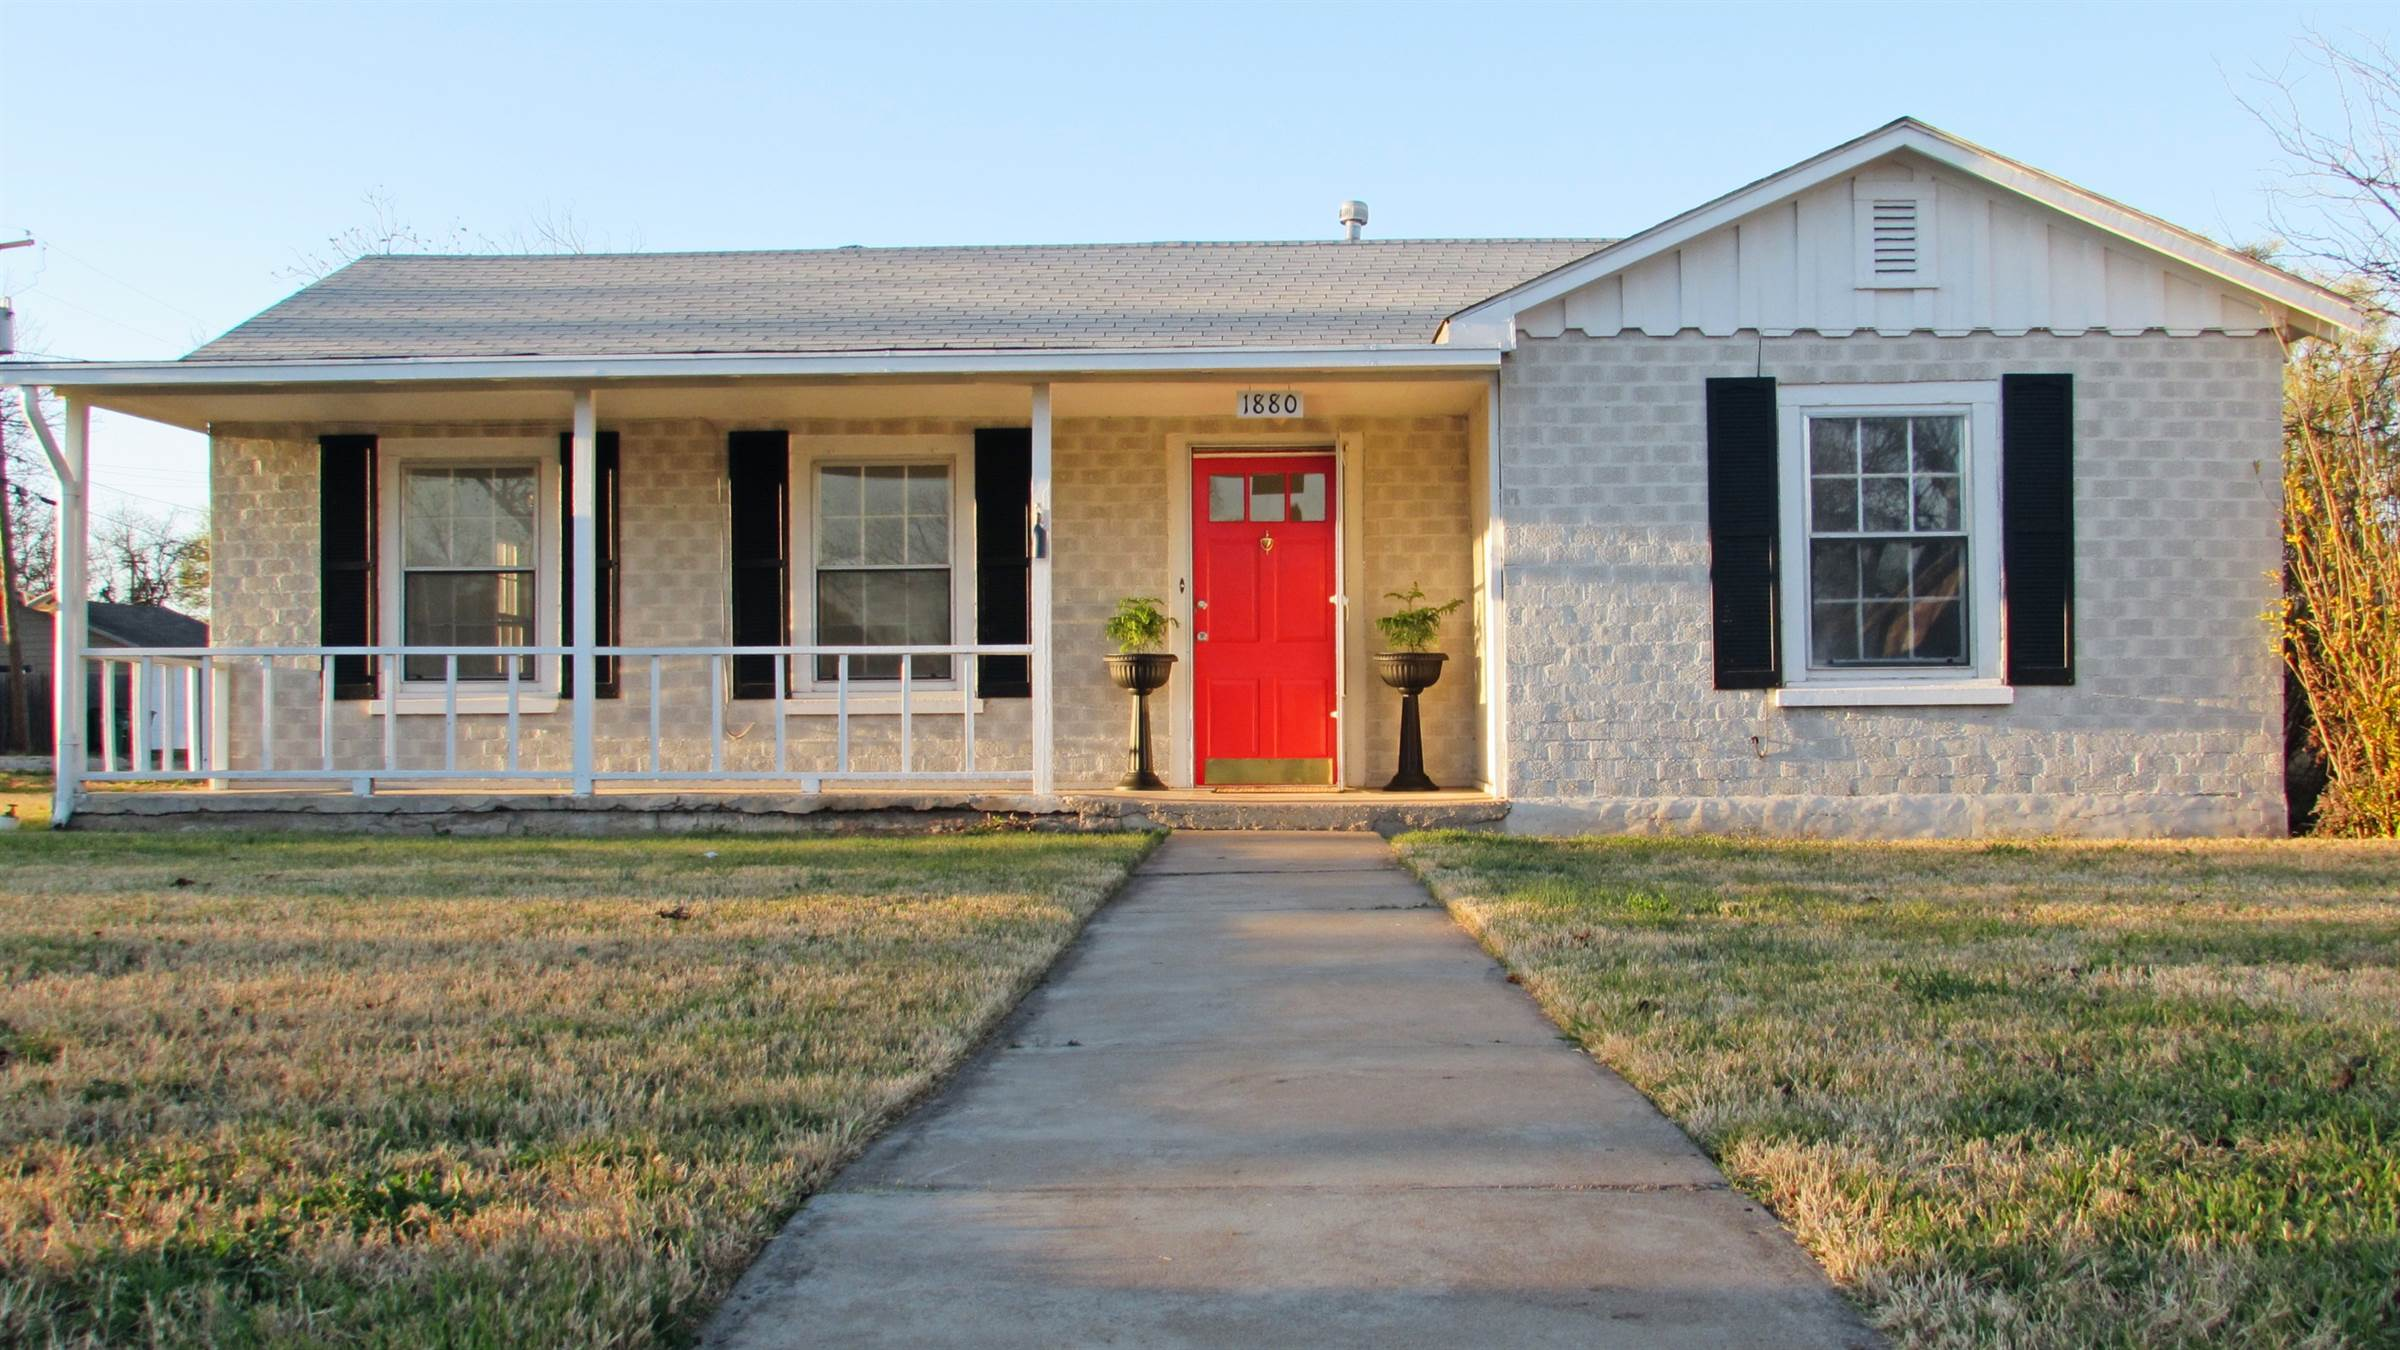 1880 Guadalupe St, San Angelo, TX 76901